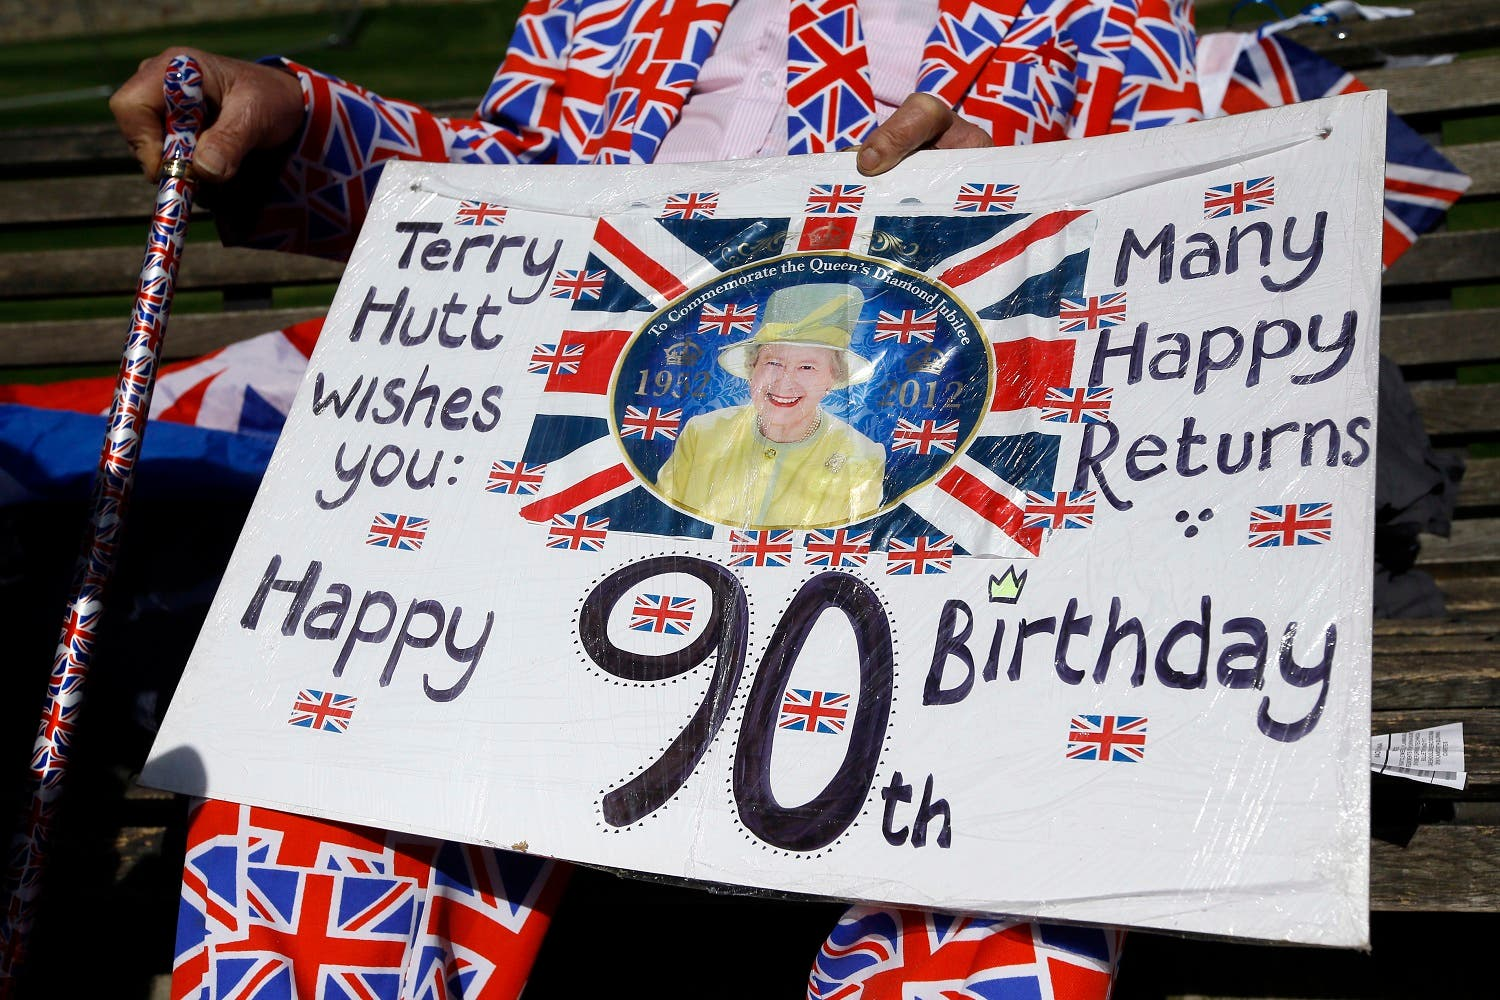 Terry Hutt, a royal fan shows a card he has made, in Windsor, England, Wednesday, April 20, 2016. Royal fans are gathering in Windsor ahead of Thursday's celebrations for the 90th birthday of Britain's Queen Elizabeth II. (AP)